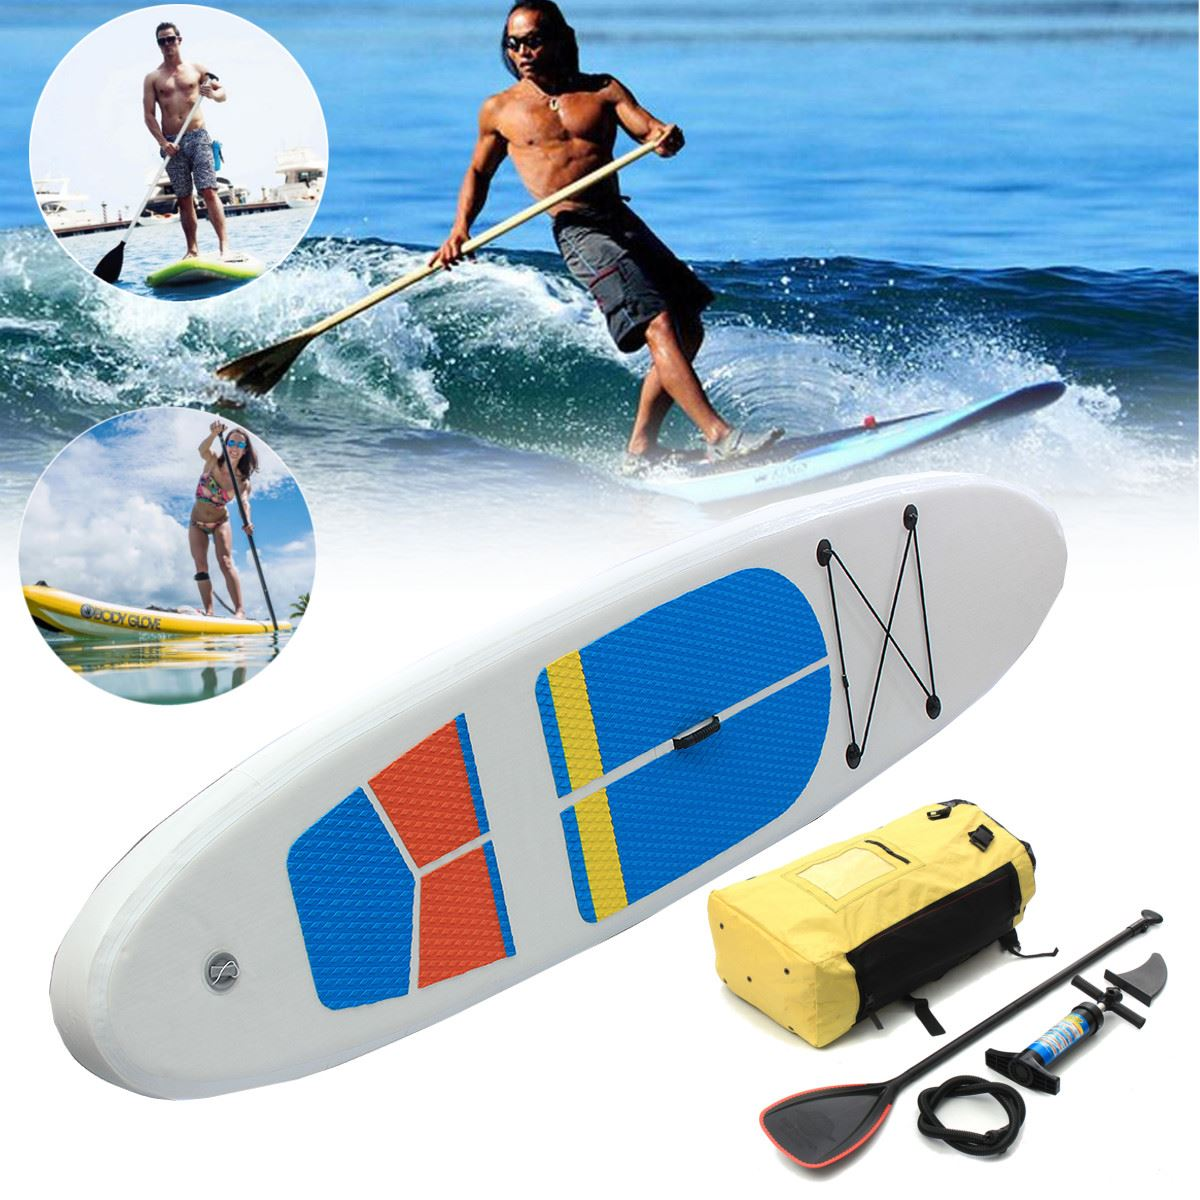 Gofun 120 x32 x 4 Inch Stand Up Paddle Surfboard Inflatable Board SUP Set Wave Rider Blue inflatable surf board sup paddle boat 2016 big cheaper 10 10 vapor surfing stand up paddle board sup board paddle board surf board sup kayak inflatable boat